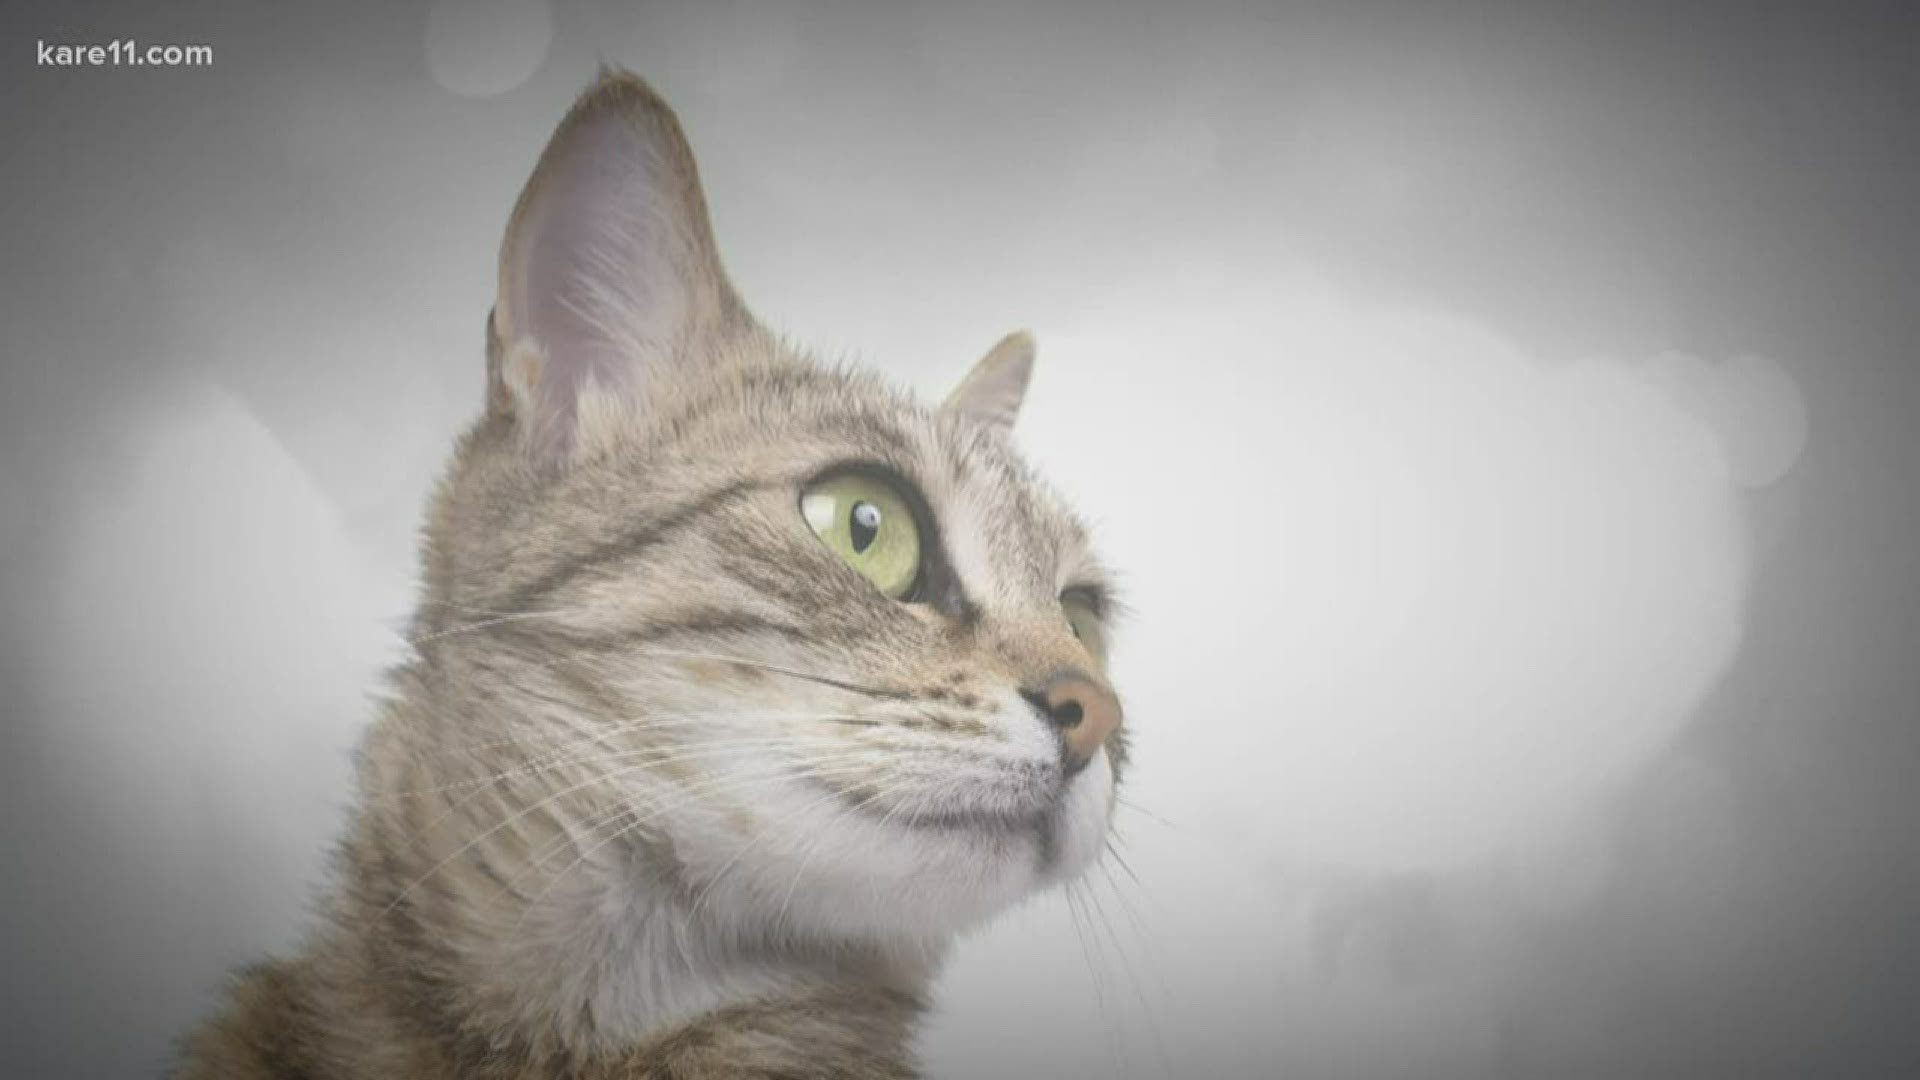 2 Cats Test Positive For Covid 19 How To Protect Your Pets Kare11 Com